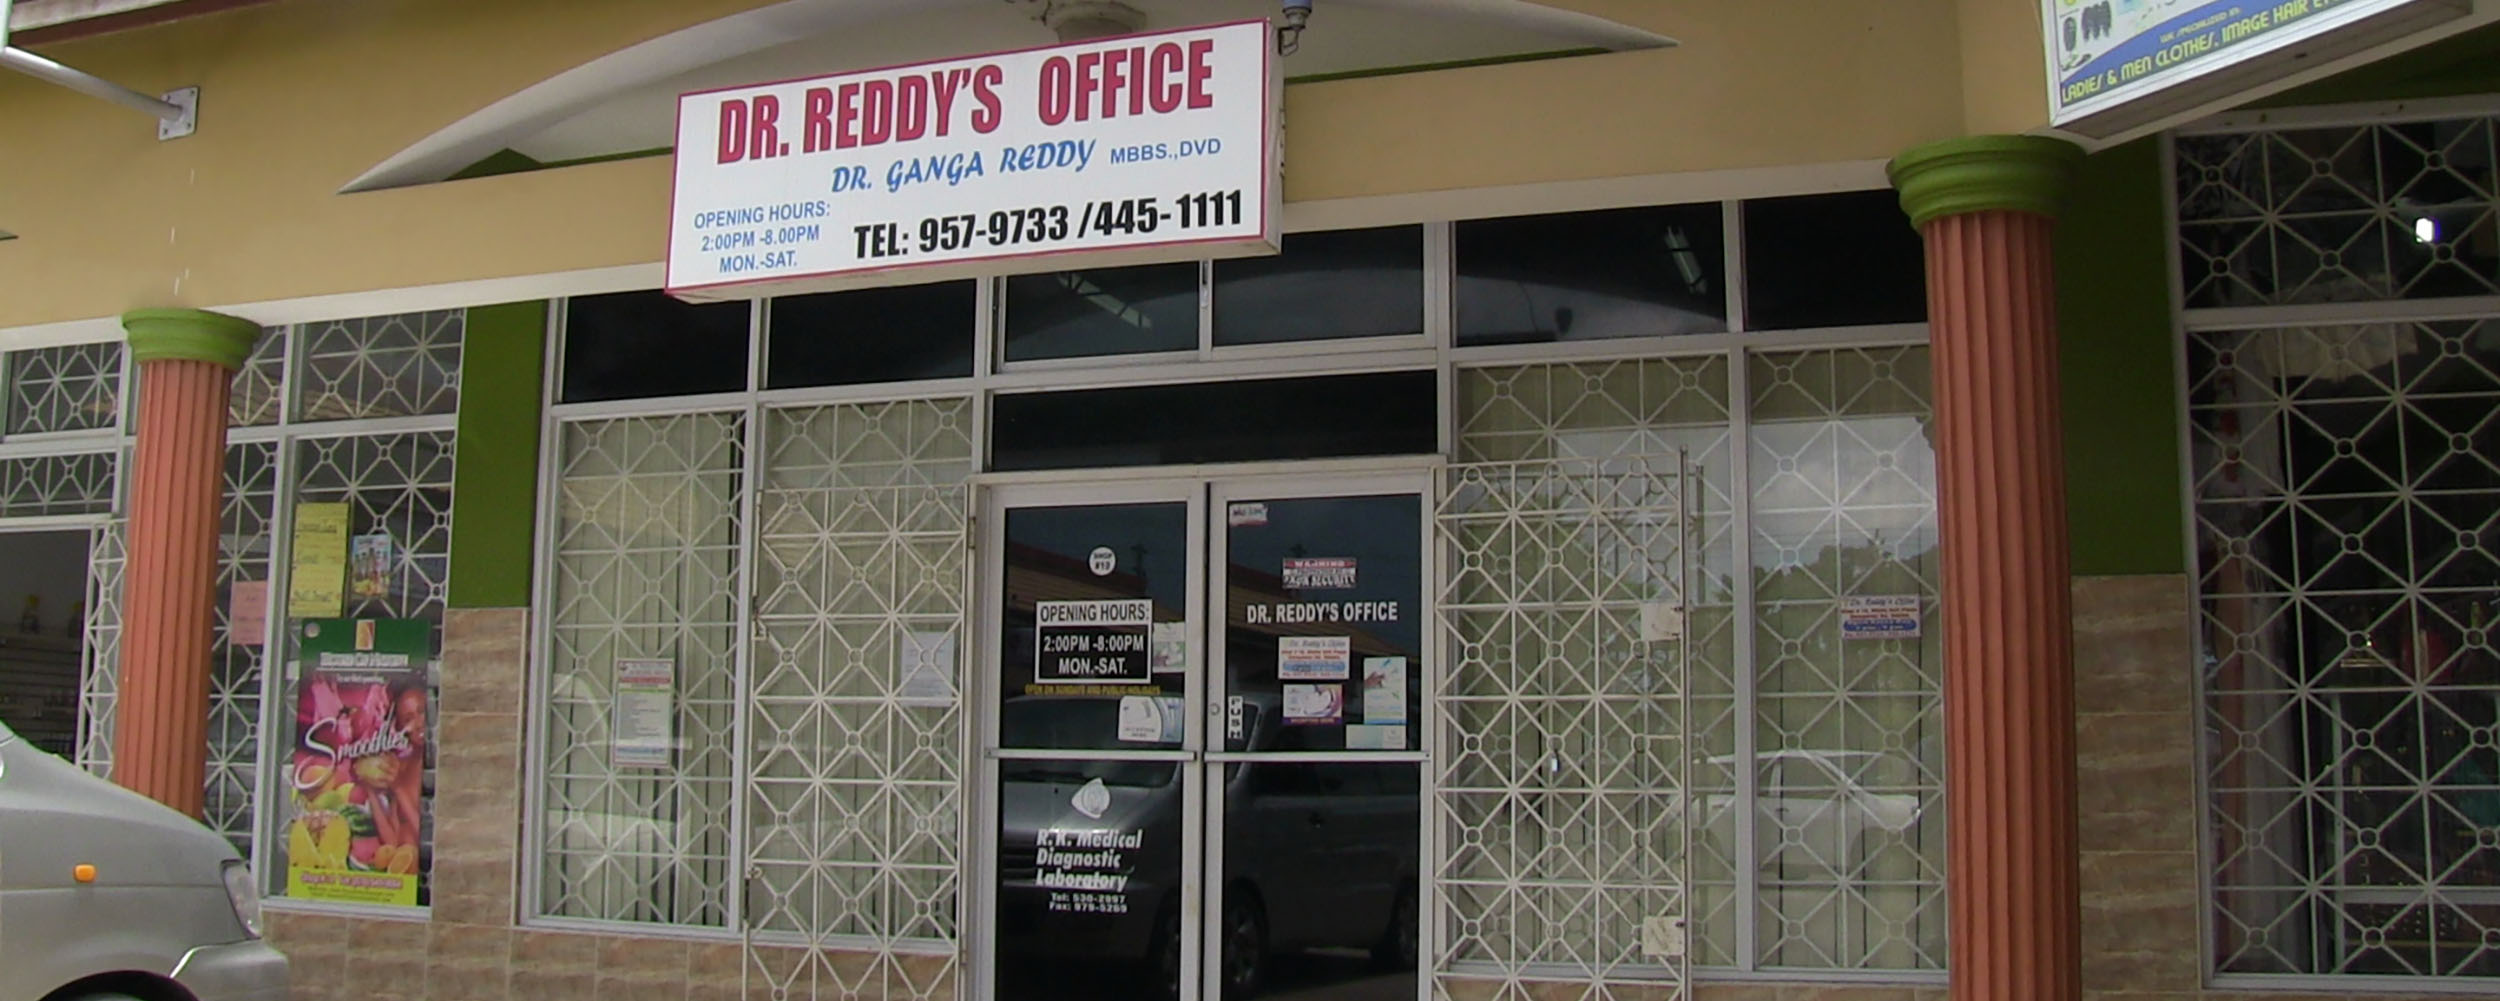 Dr. Reddy's Office - White Hall Plaza - Nonpareil Road, Negril Jamaica